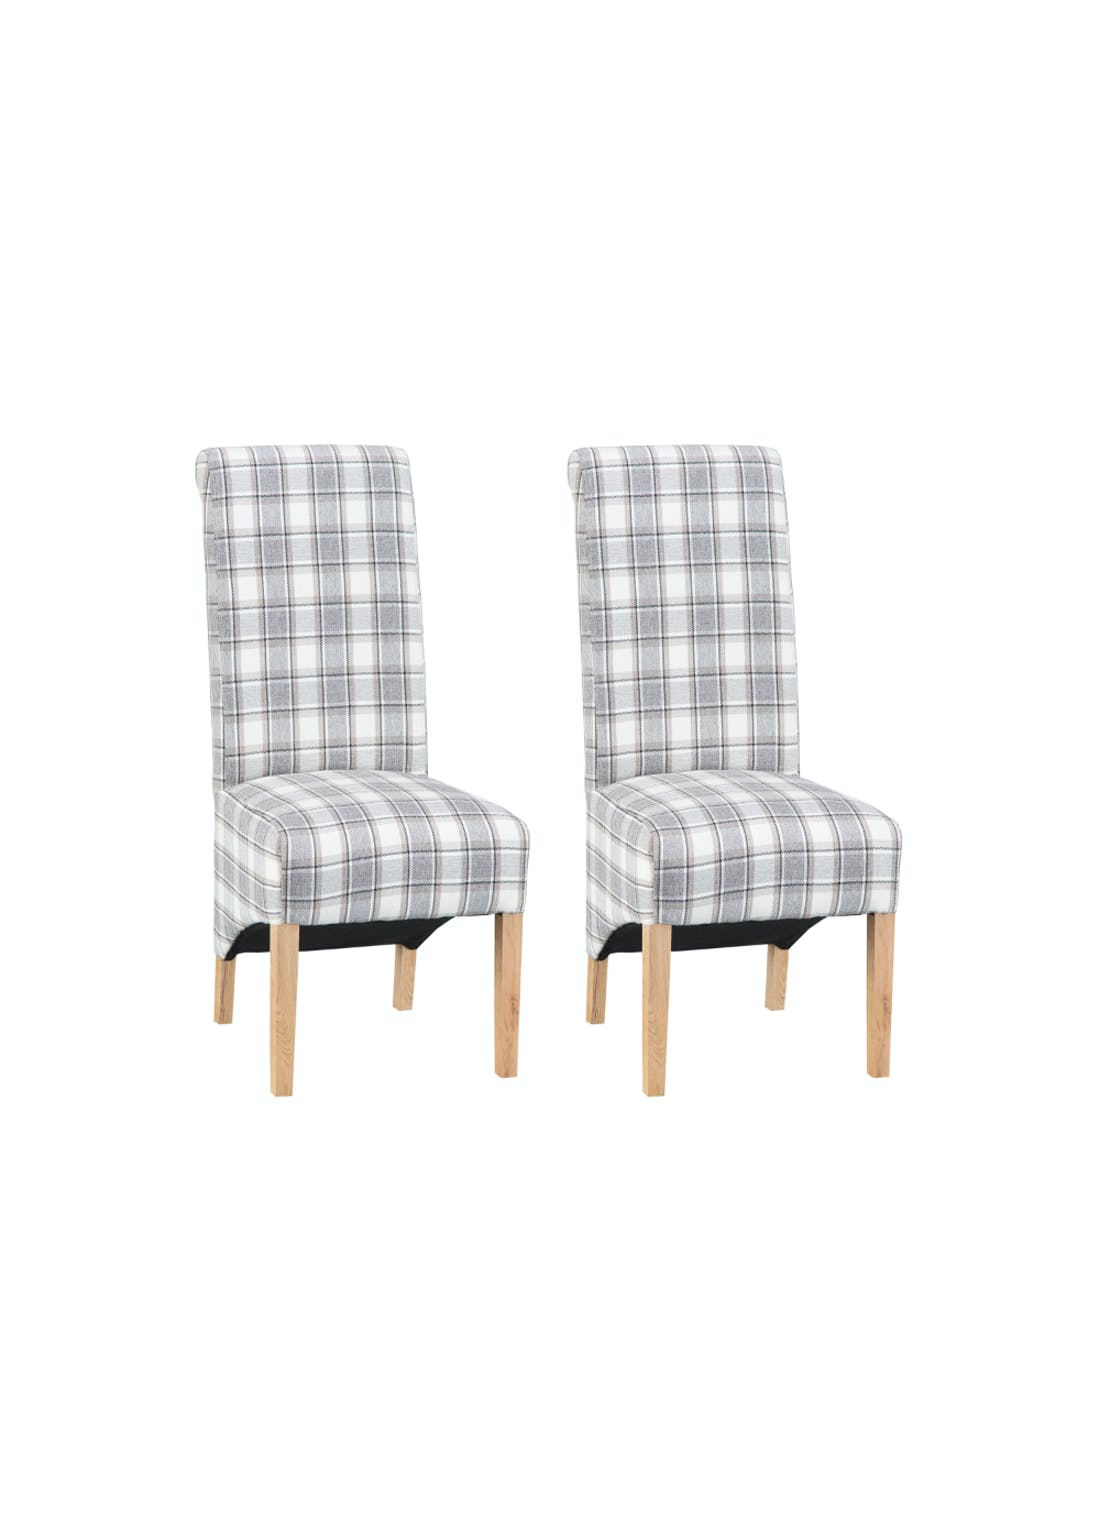 Interiors Direct 2 Pack Arundel Scroll Back Chairs (105cm x 66cm x 47cm)